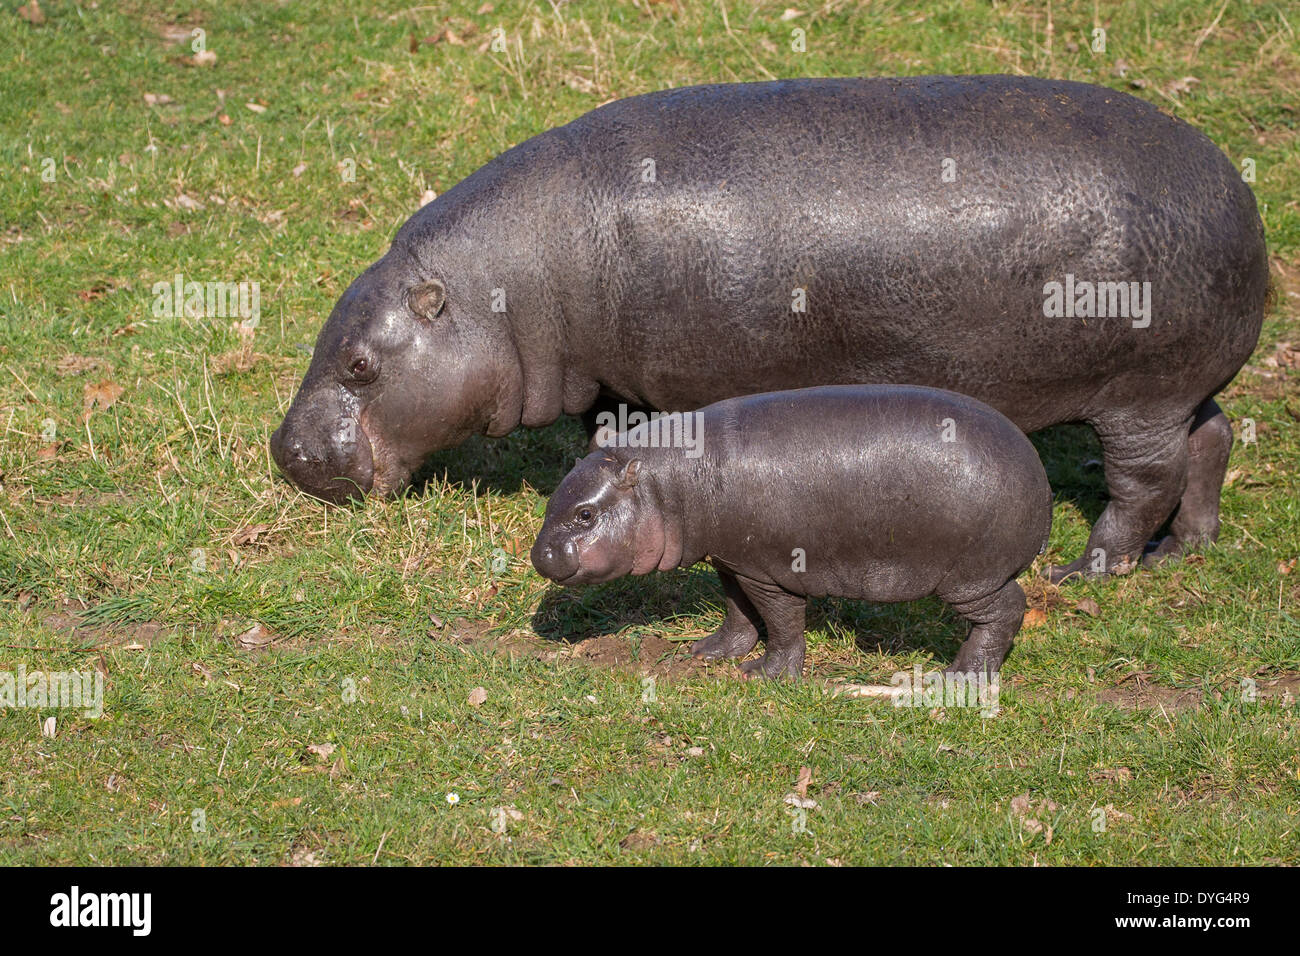 Pygmy Hippo three months old - Stock Image